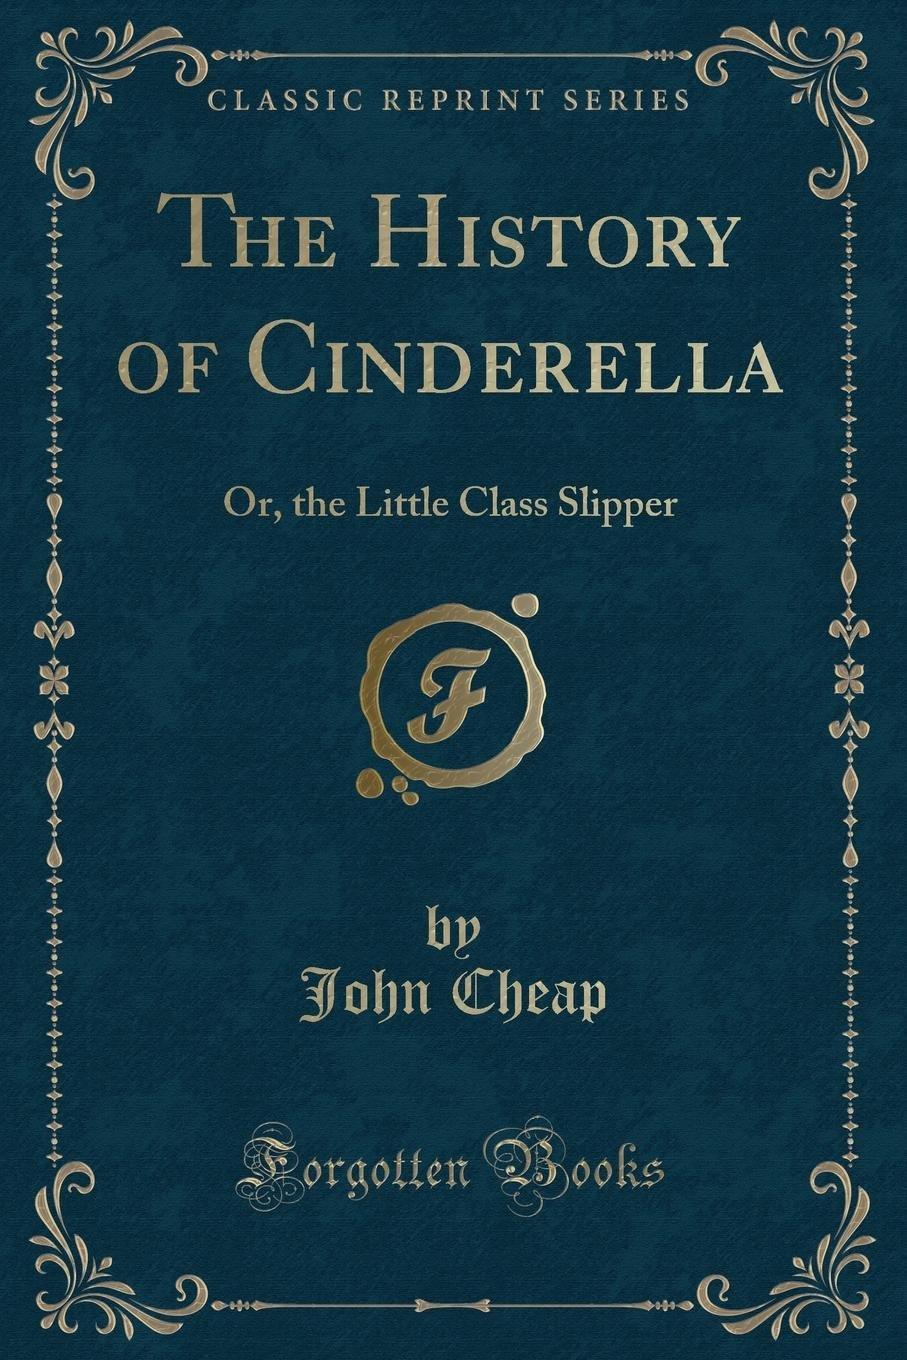 The History of Cinderella: Or, the Little Class Slipper (Classic Reprint) PDF